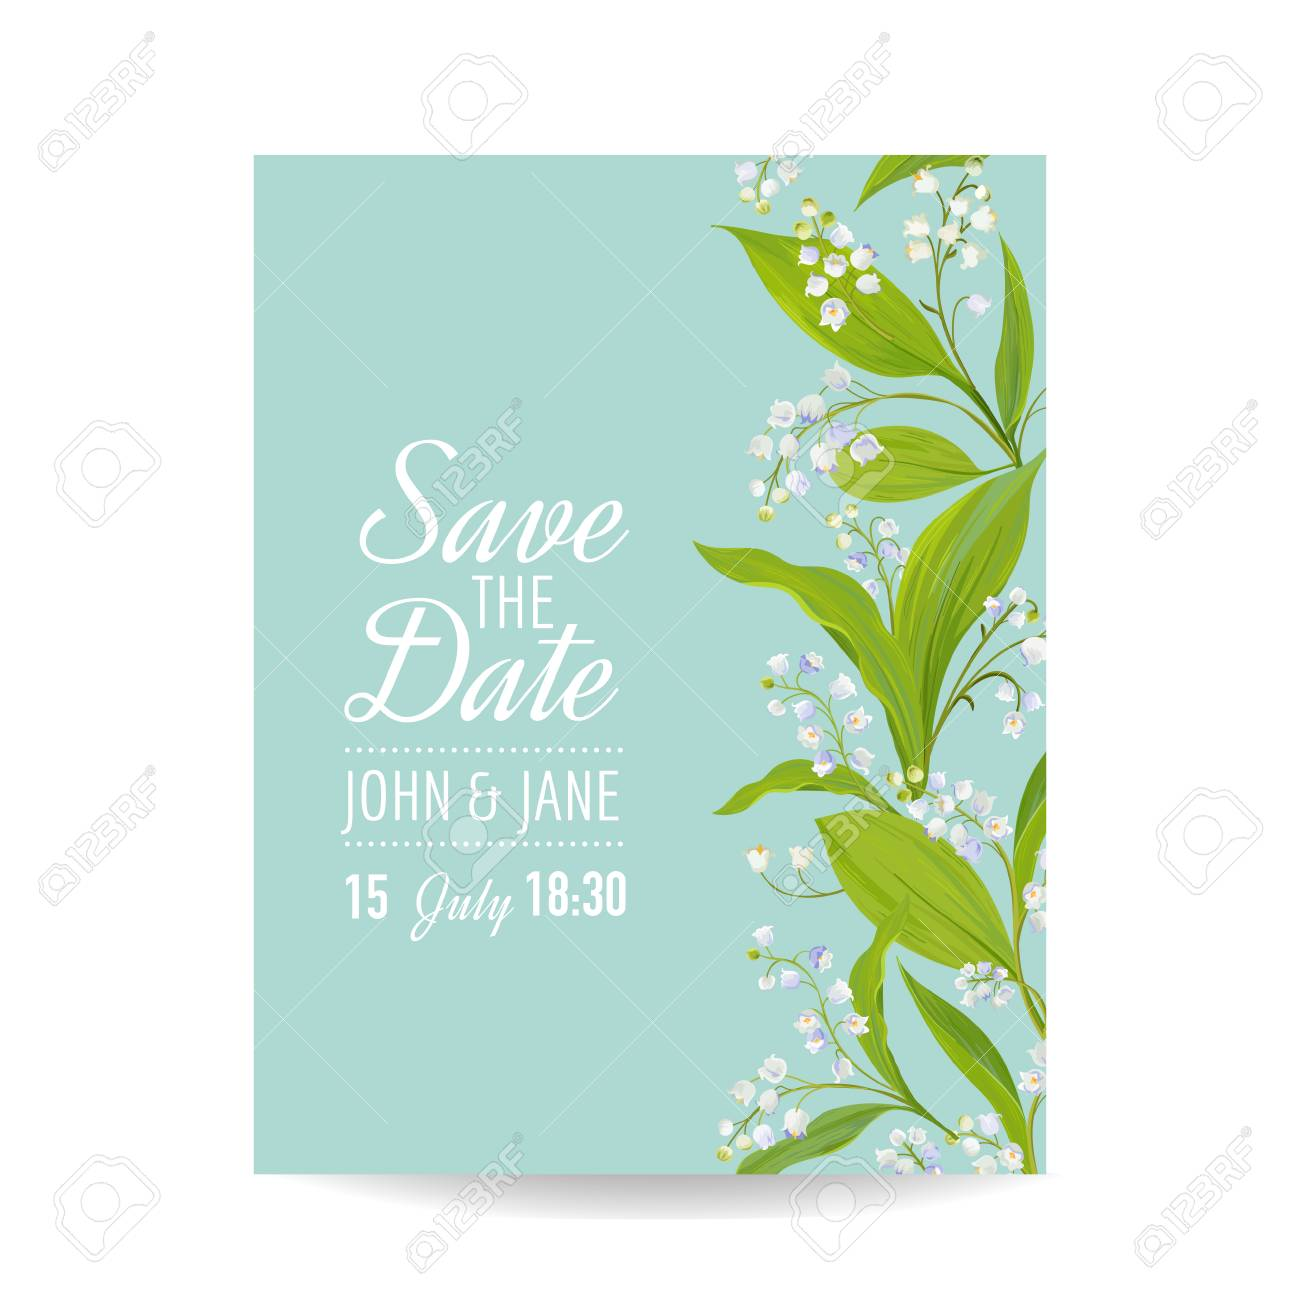 Floral Wedding Invitation Template With Spring Lily Of The Valley ...